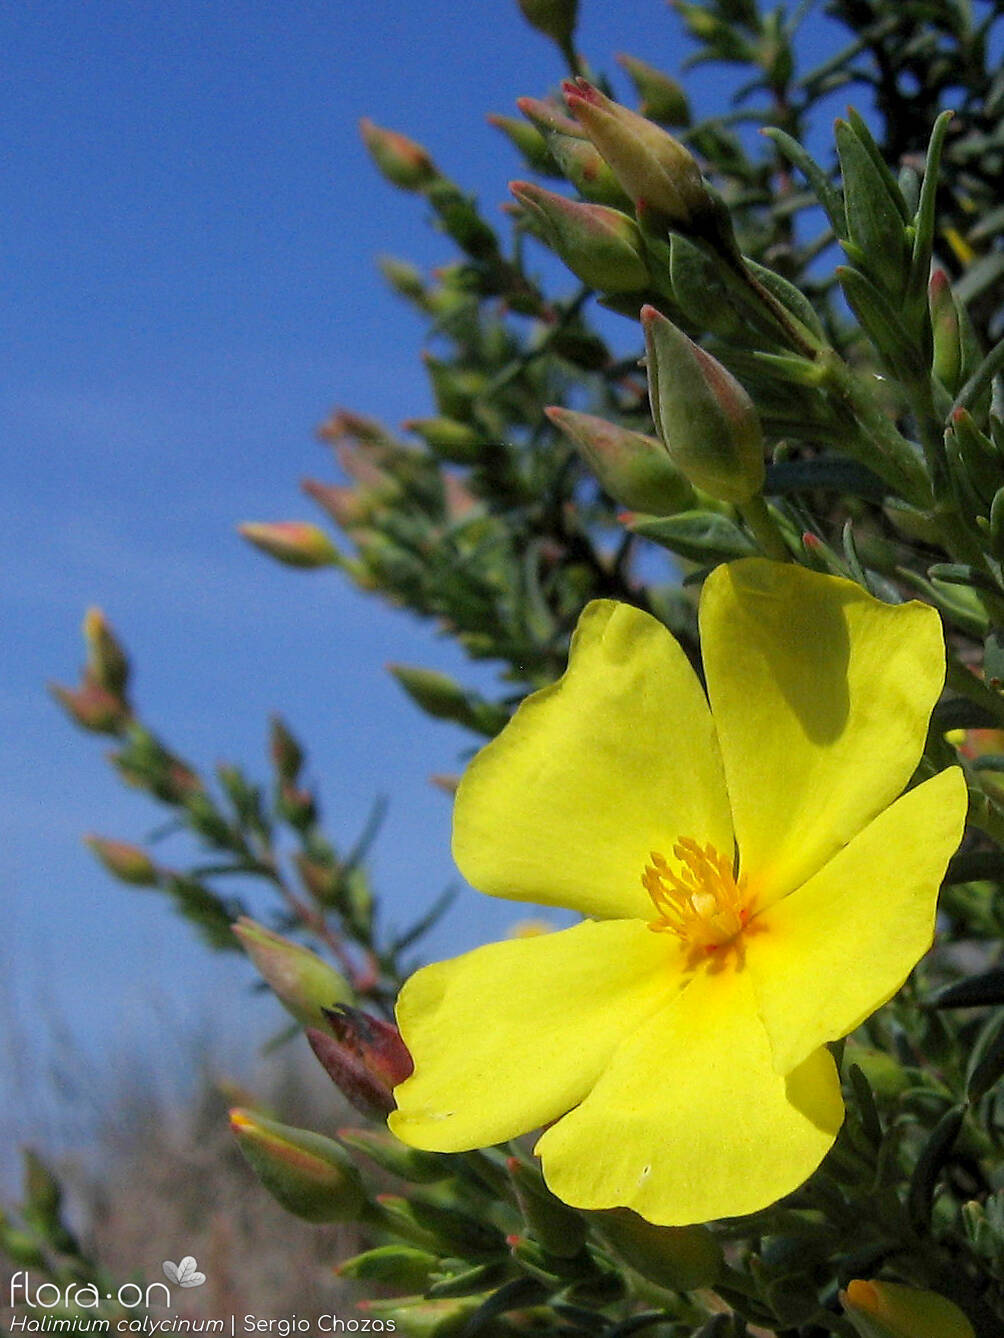 Halimium calycinum - Flor (close-up) | Sergio Chozas; CC BY-NC 4.0